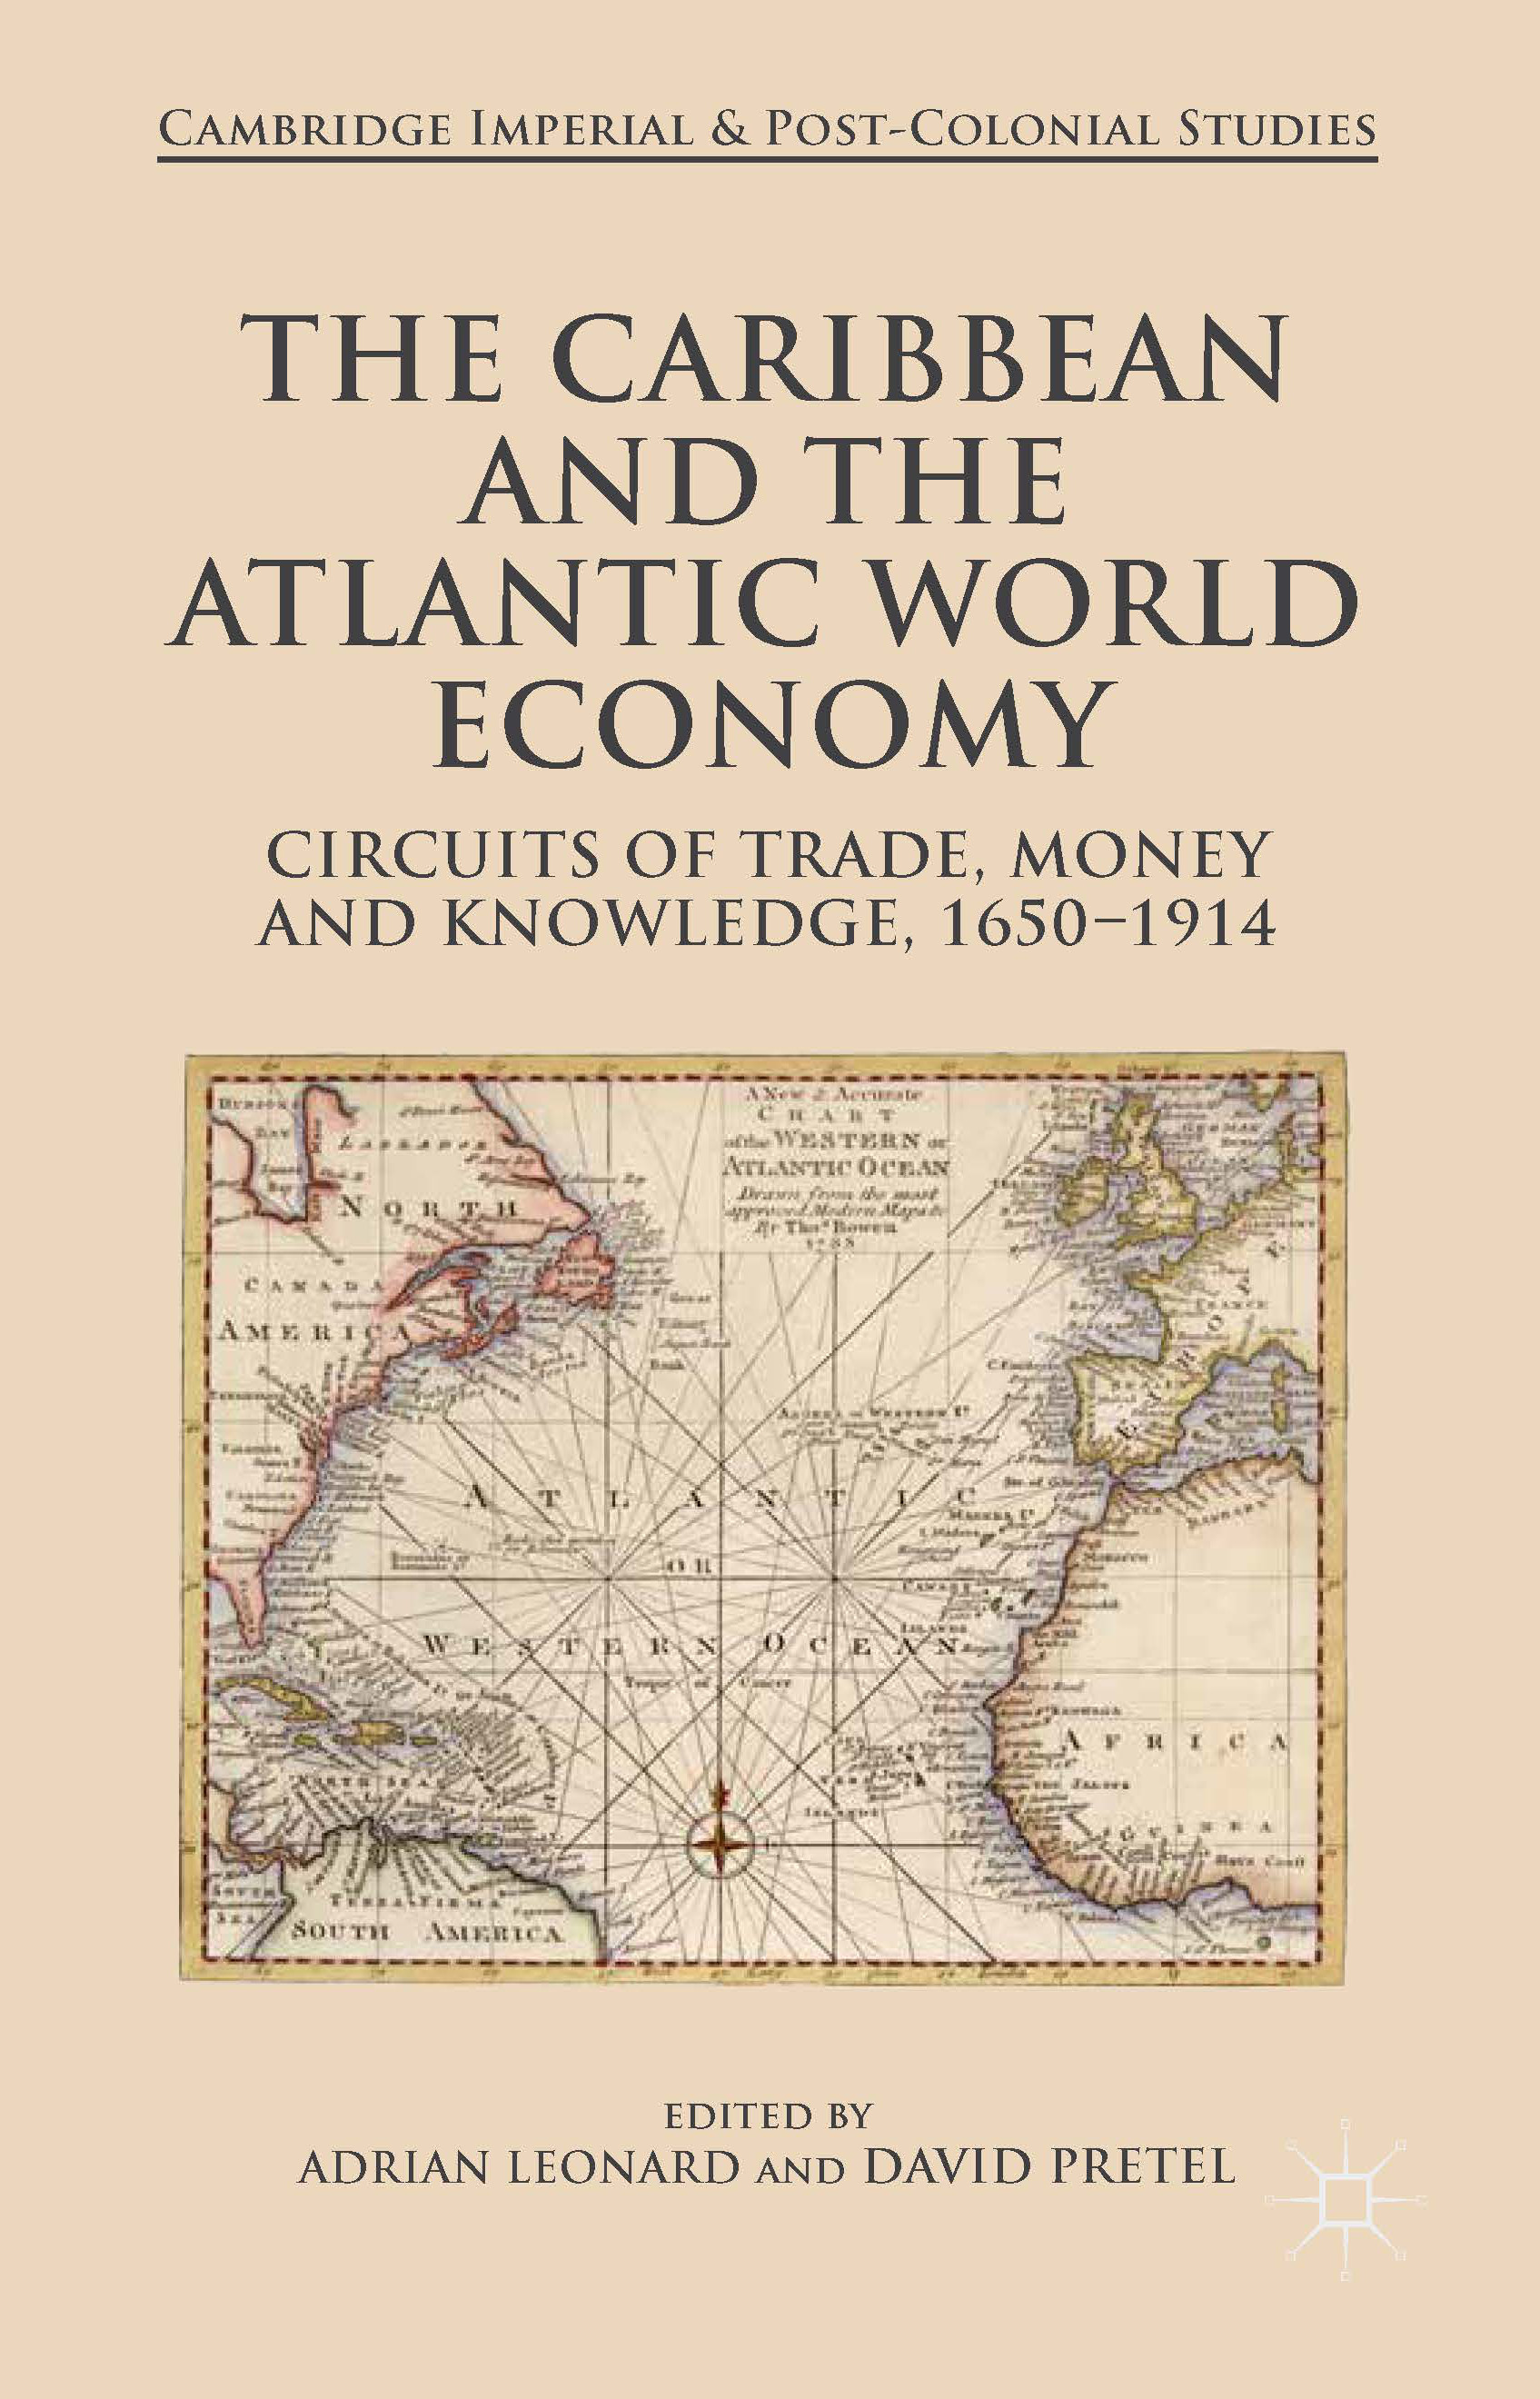 colonialism and atlantic world An introductory unit on the atlantic world from 1450 to 1750 could consist of three major topics: exchanges within the atlantic world, development of colonial systems, and the consequences of colonization.